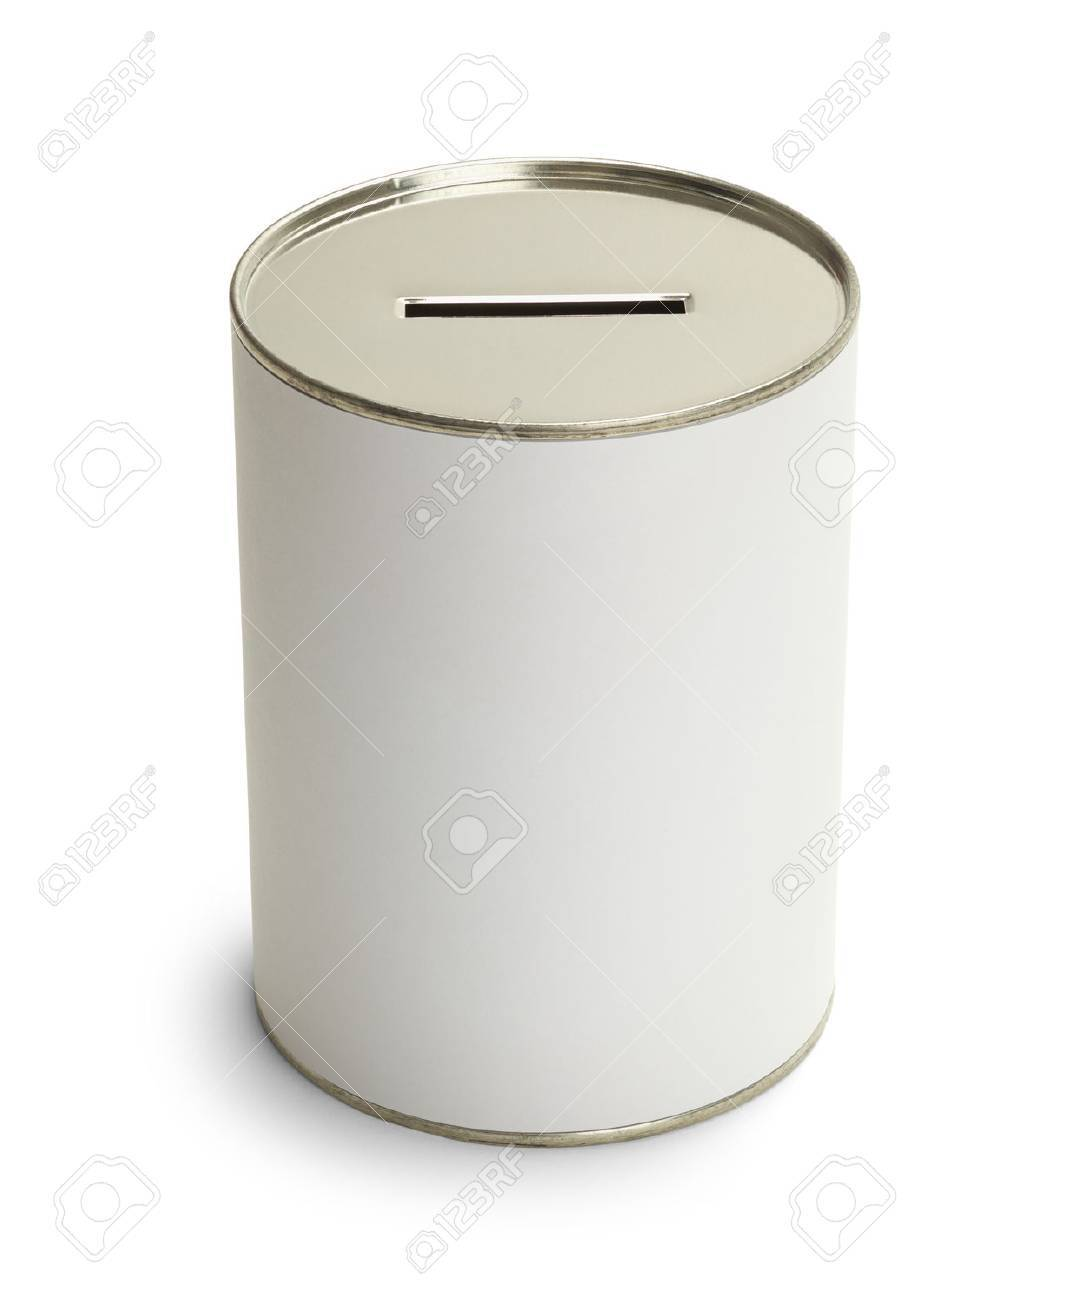 White Donation Can With Copyspace Isolate on White Background. - 38386587